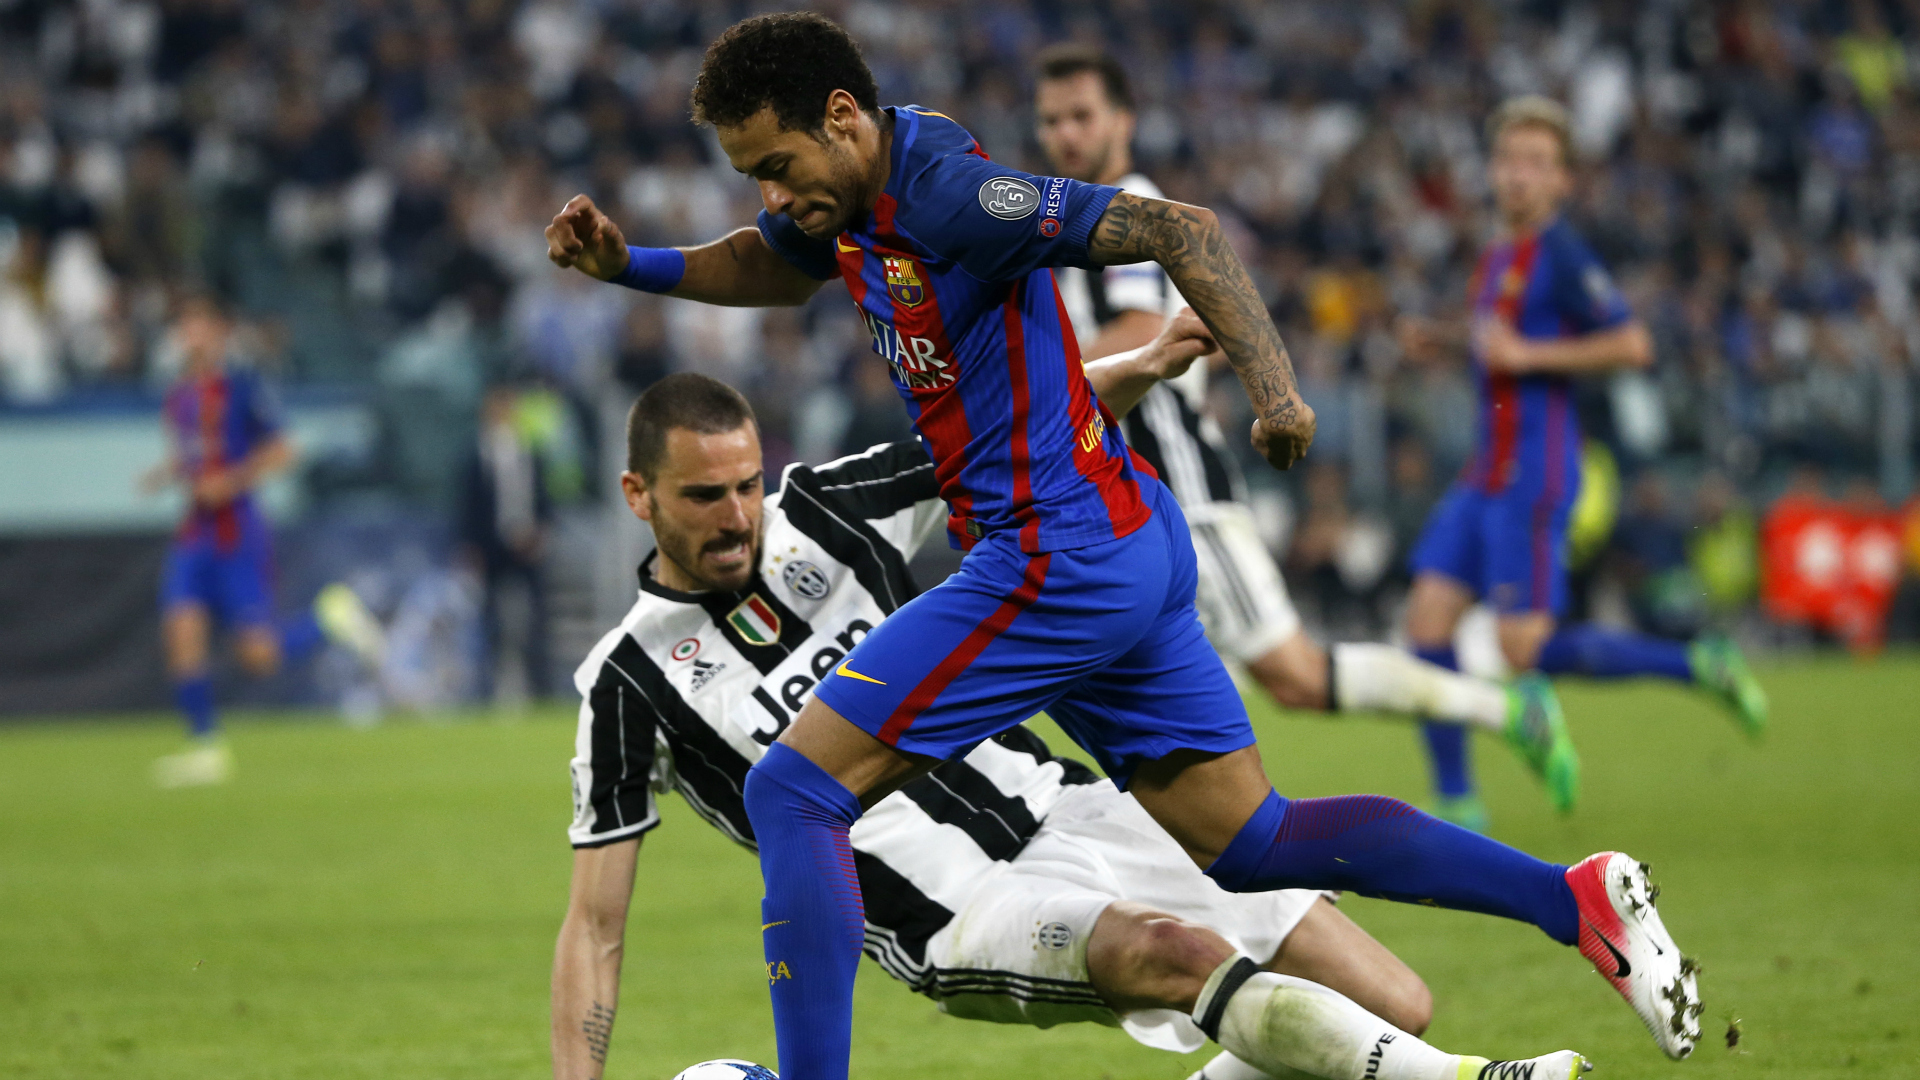 Champions League: Barcellona Juve 3-0, un disastro